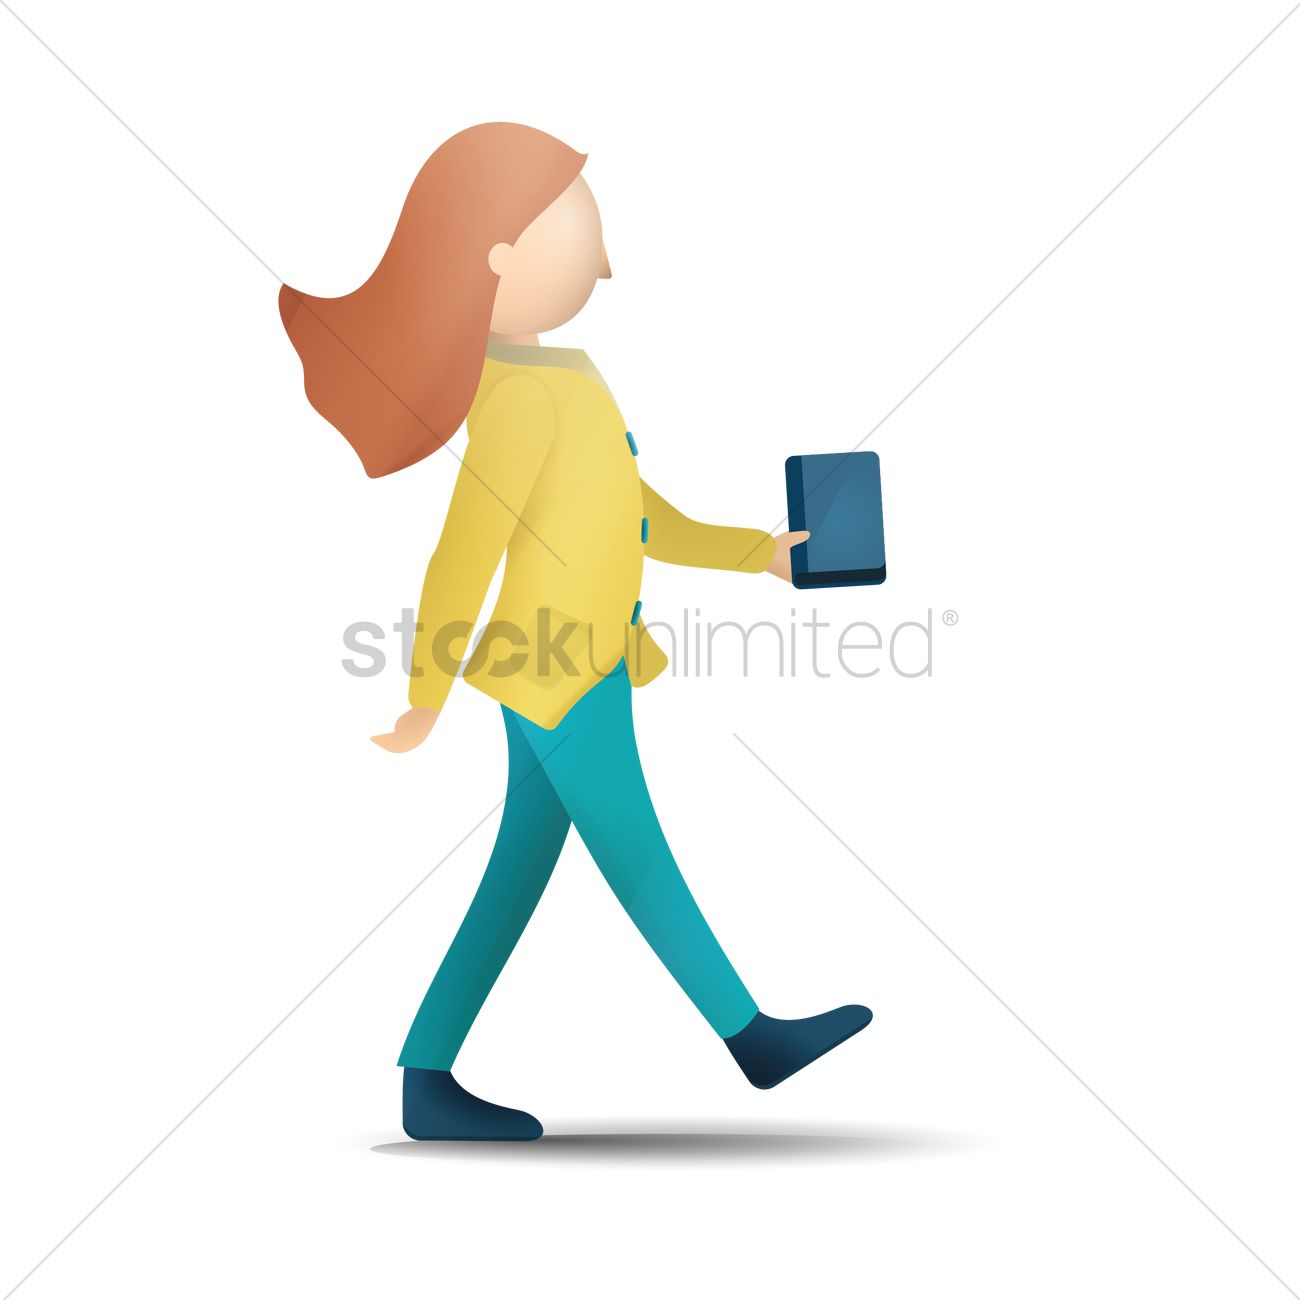 Girl walking with bag and book Vector Image - 1813520 | StockUnlimited